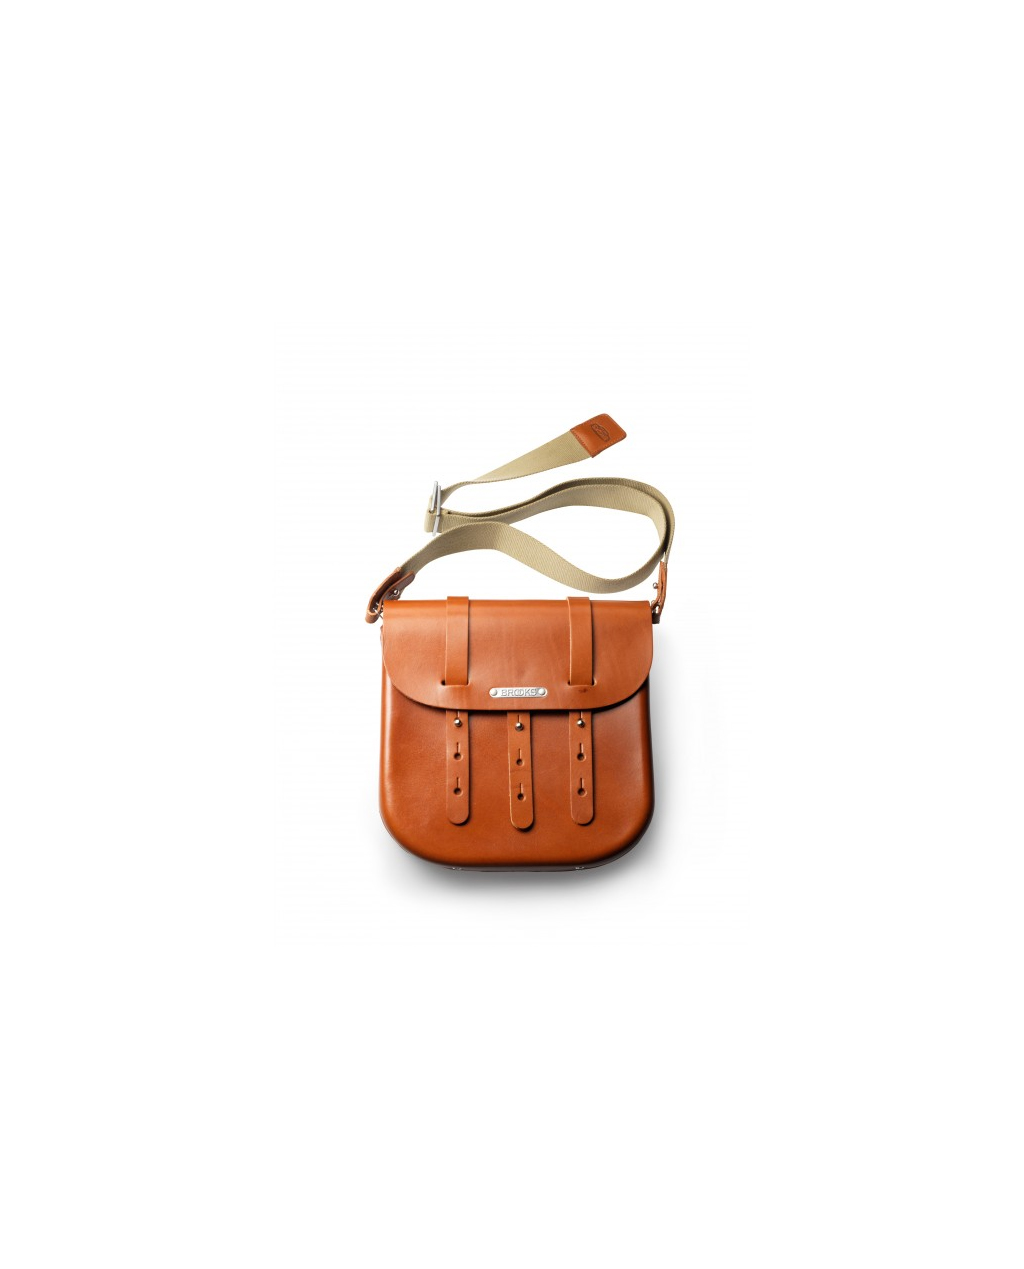 Brooks B3 Leather Bag - Honey